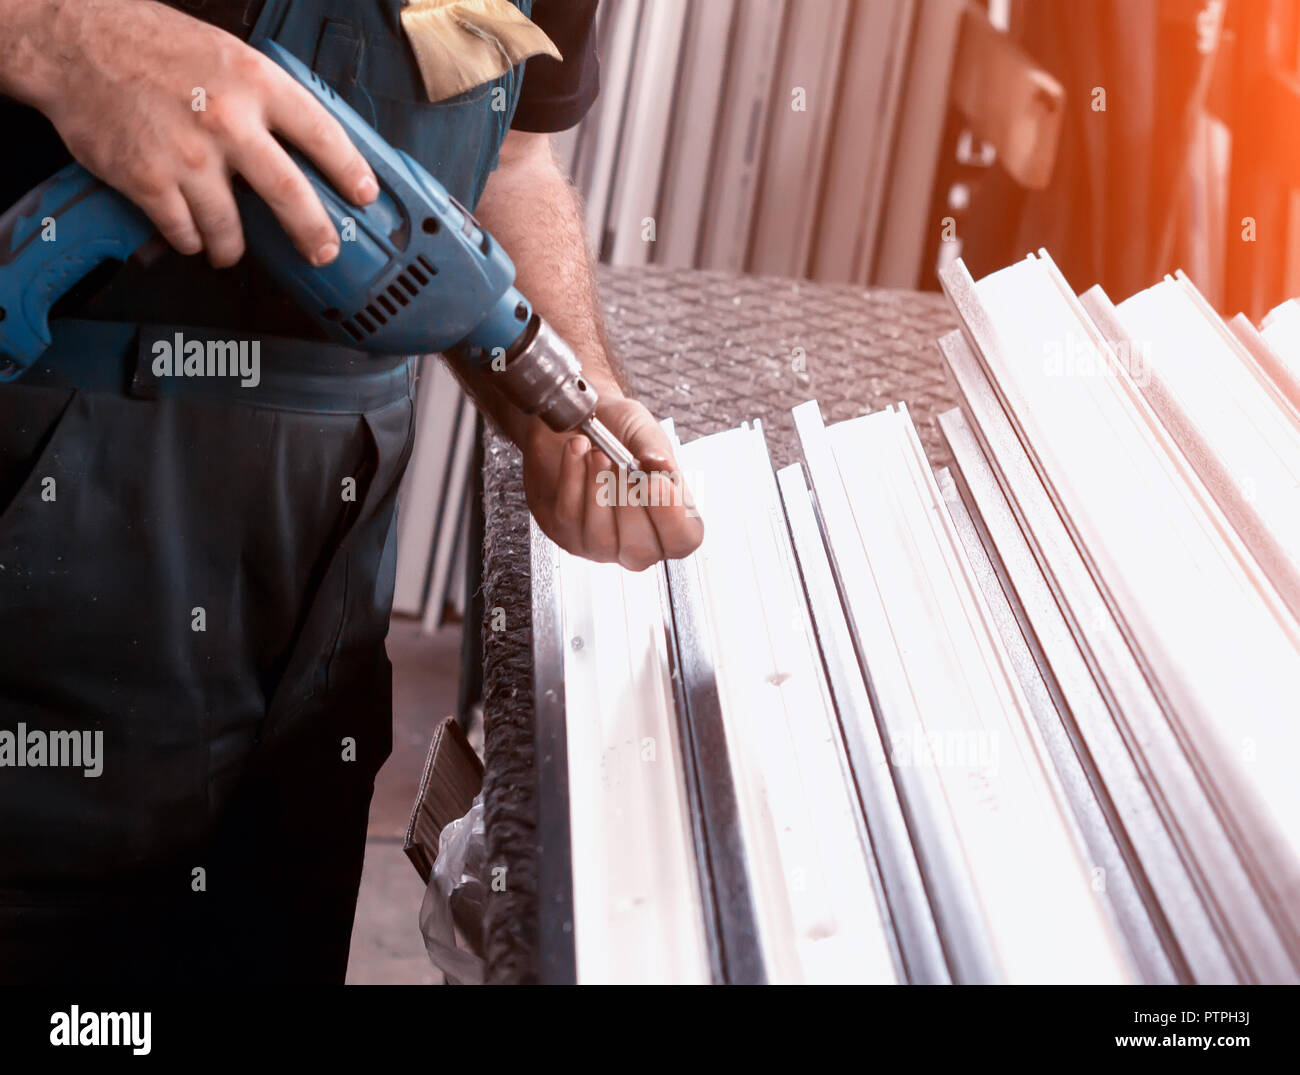 Production of pvc windows, the worker is screwed with a screwdriver with a snap to the pvc window, close-up, screwdriver - Stock Image